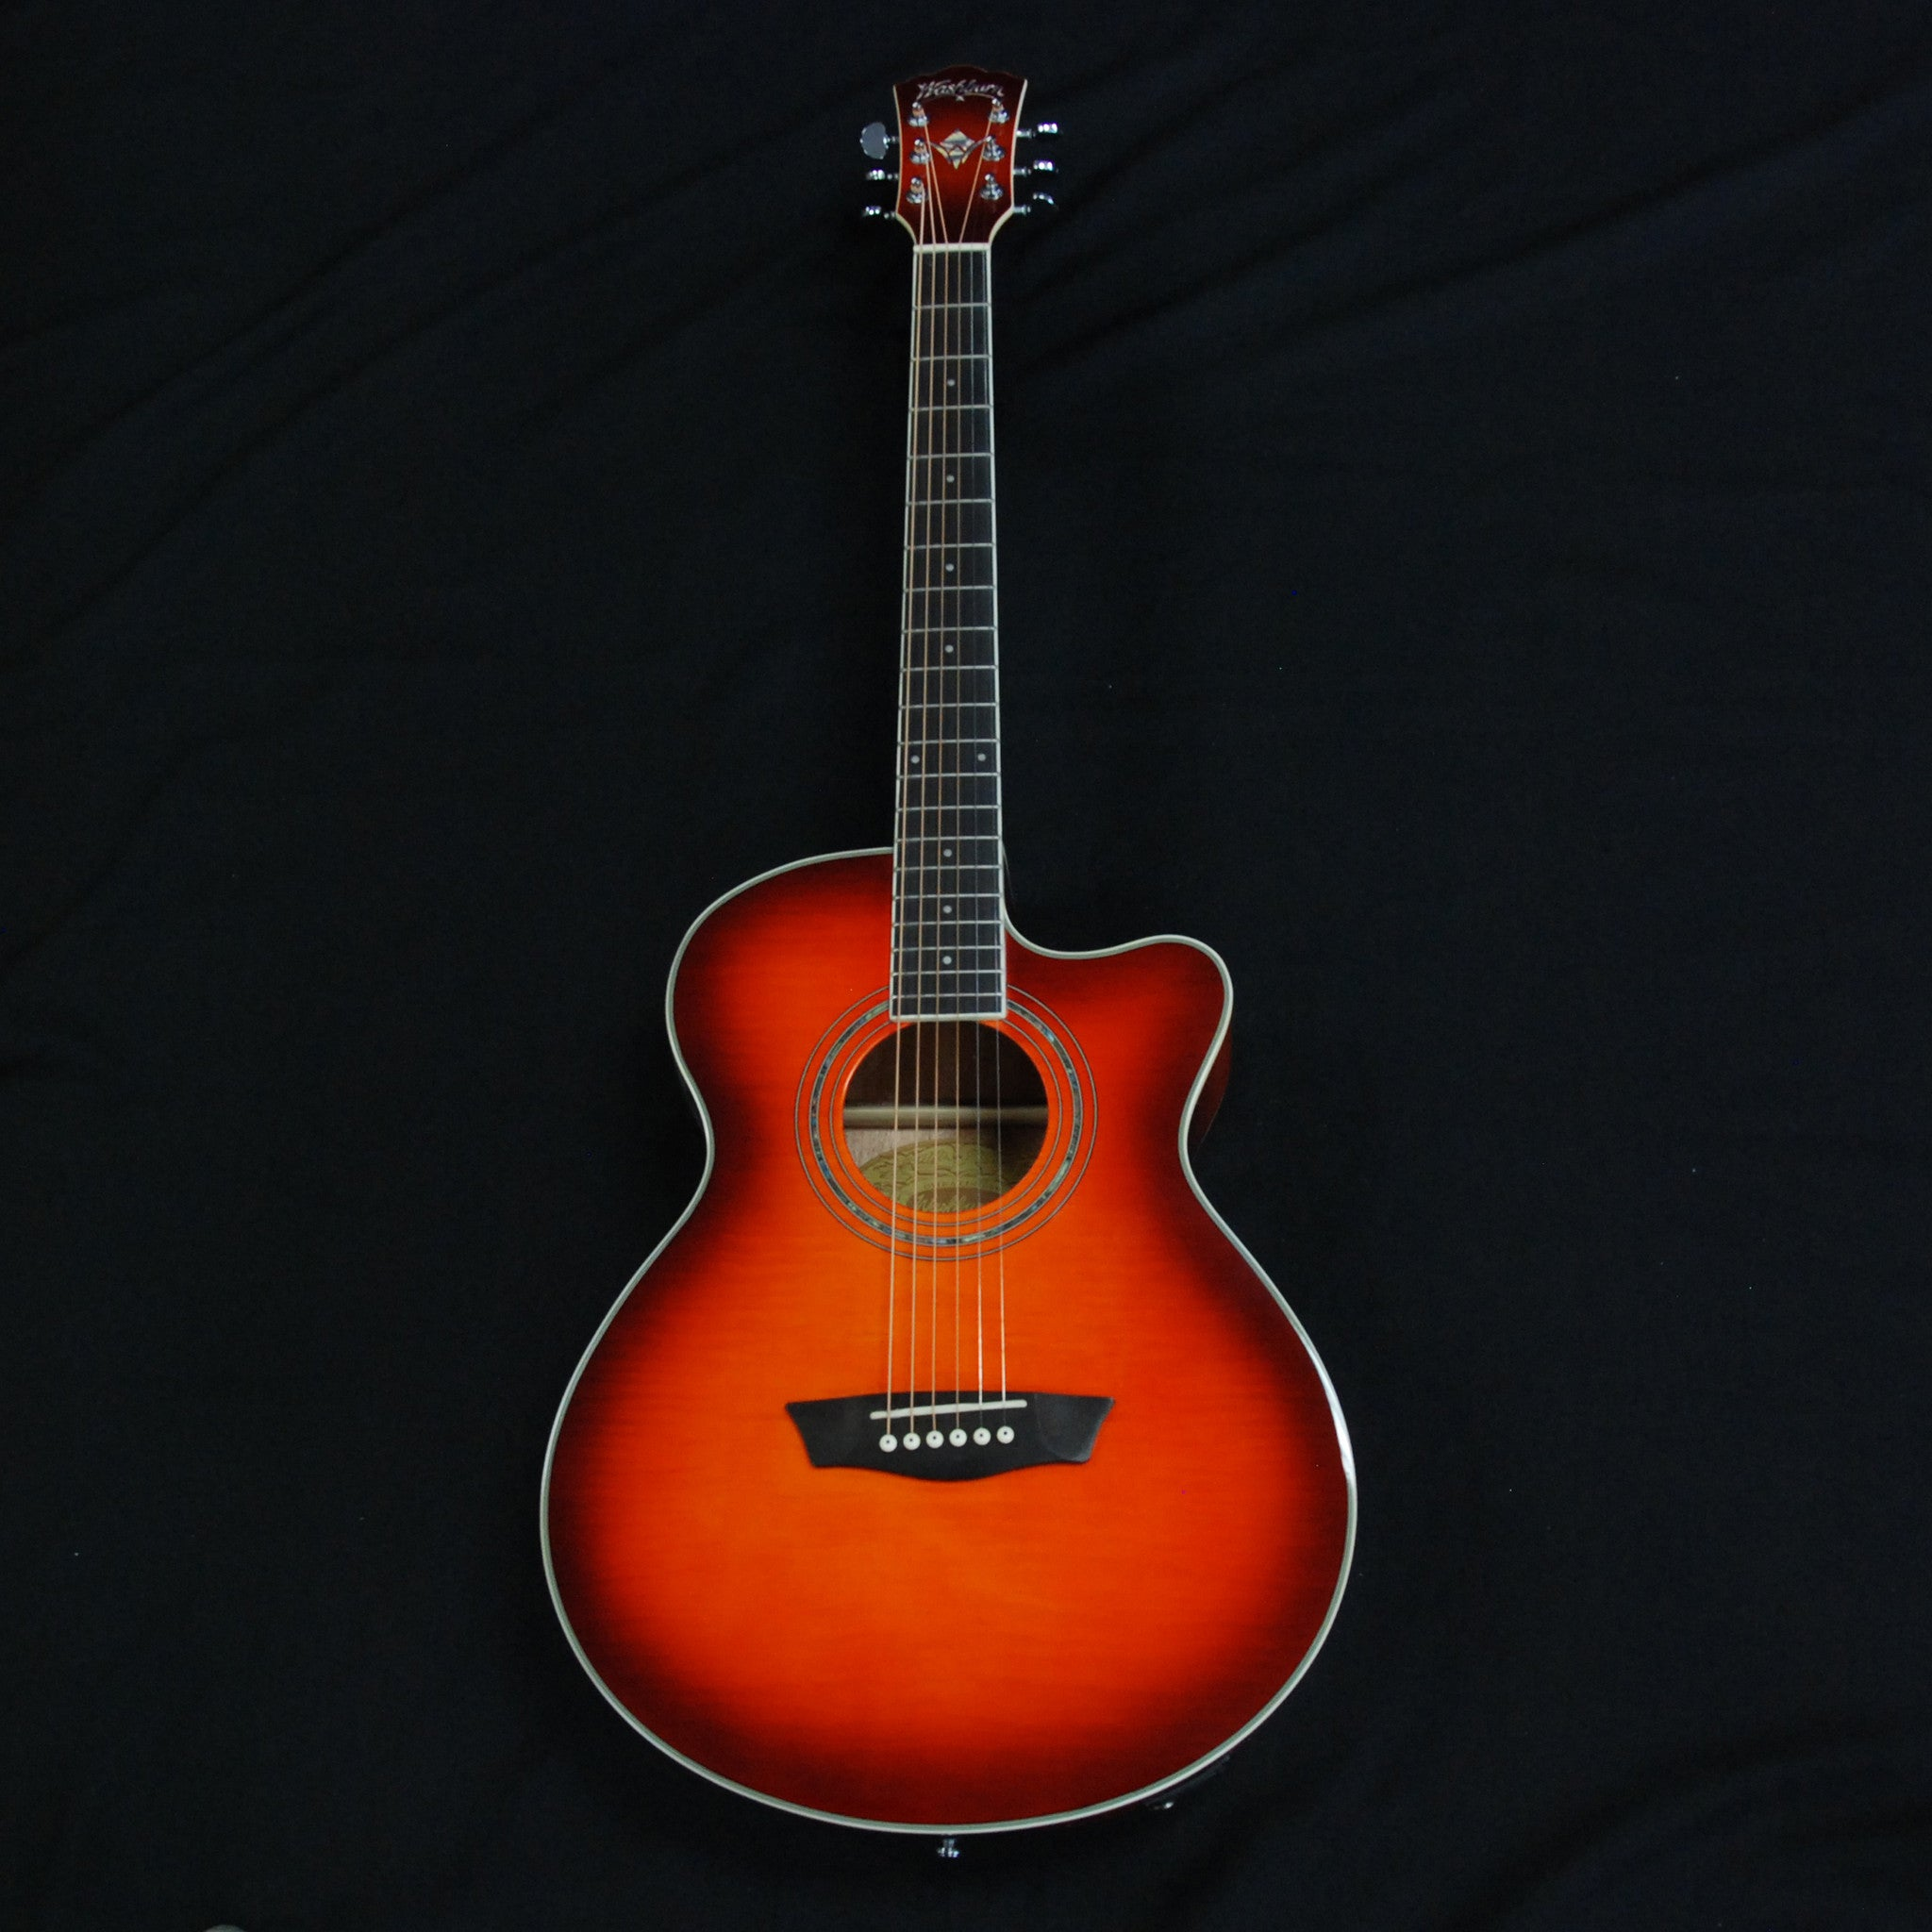 Shop online for Washburn EA15ITB Electric Mini Jumbo Acoustic Guitar Ice Tea Burst today. Now available for purchase from Midlothian Music of Orland Park, Illinois, USA